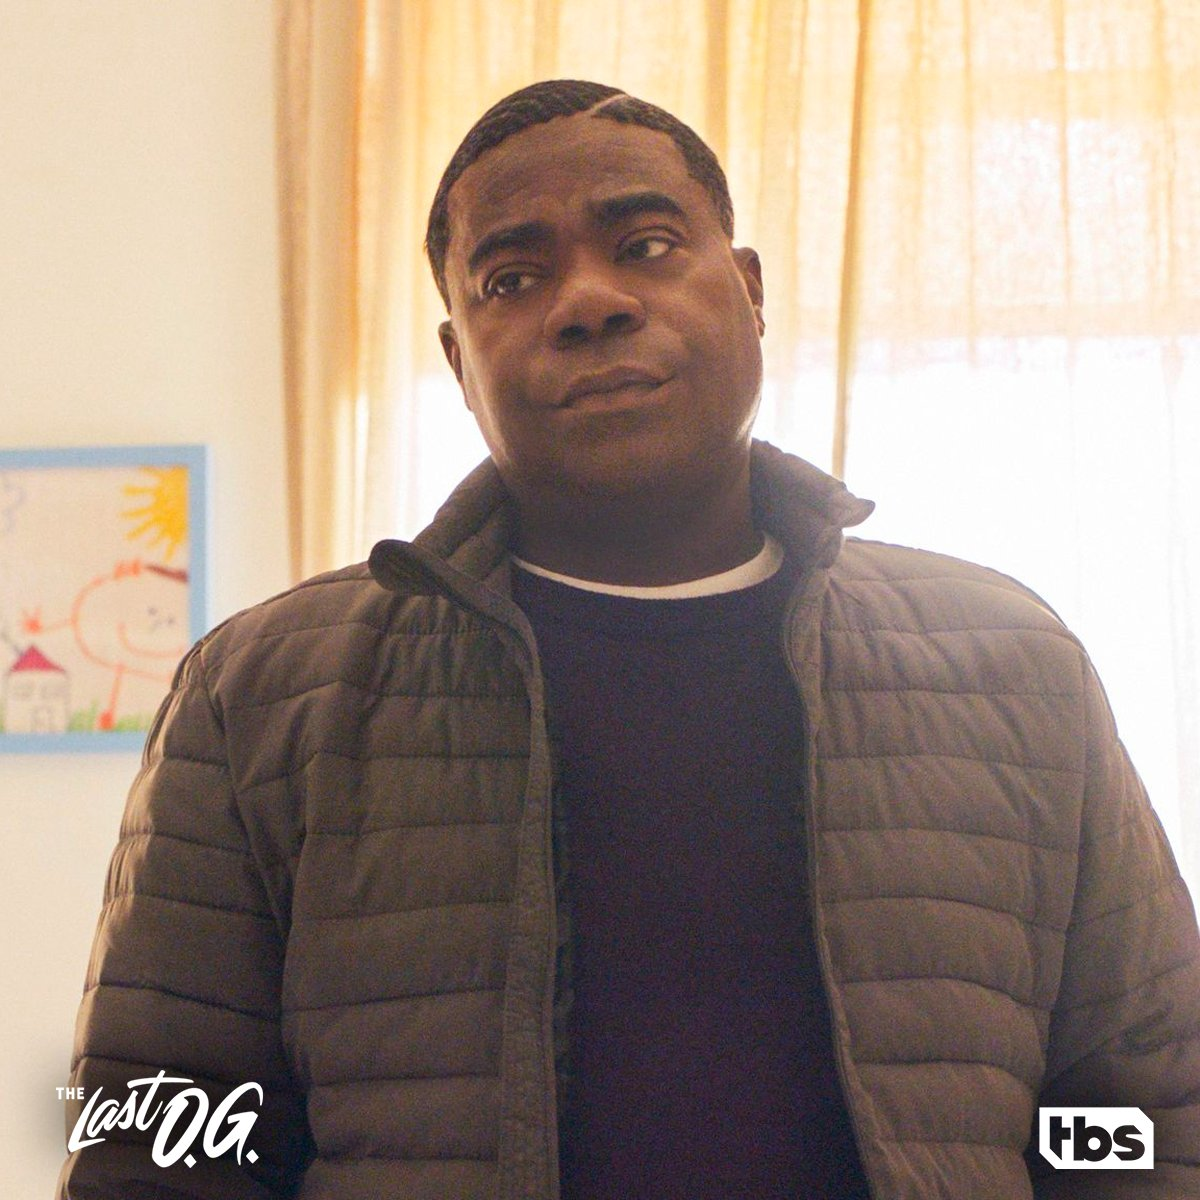 When you're ready for a new episode of #TheLastOG, but have to wait 3 days. 🙄